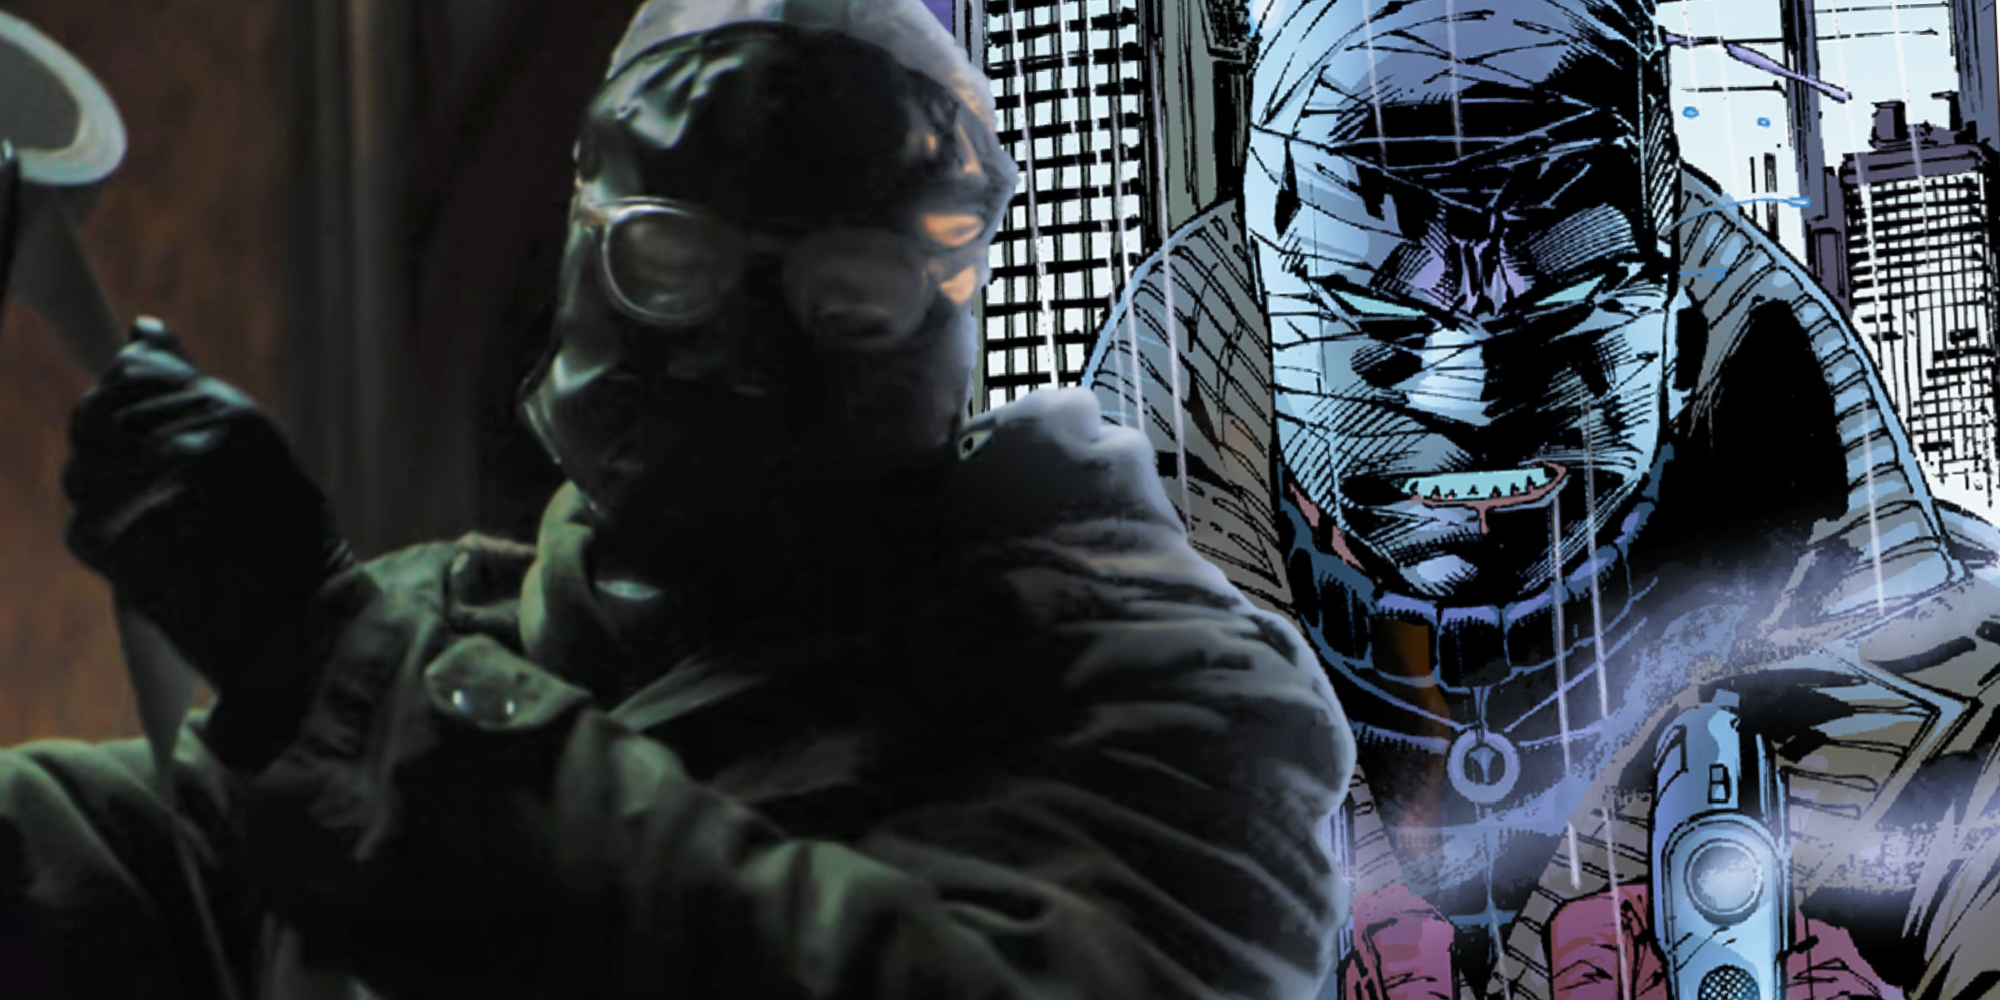 The Batman Theory: The Villain In The Trailer Is Hush, Not Riddler